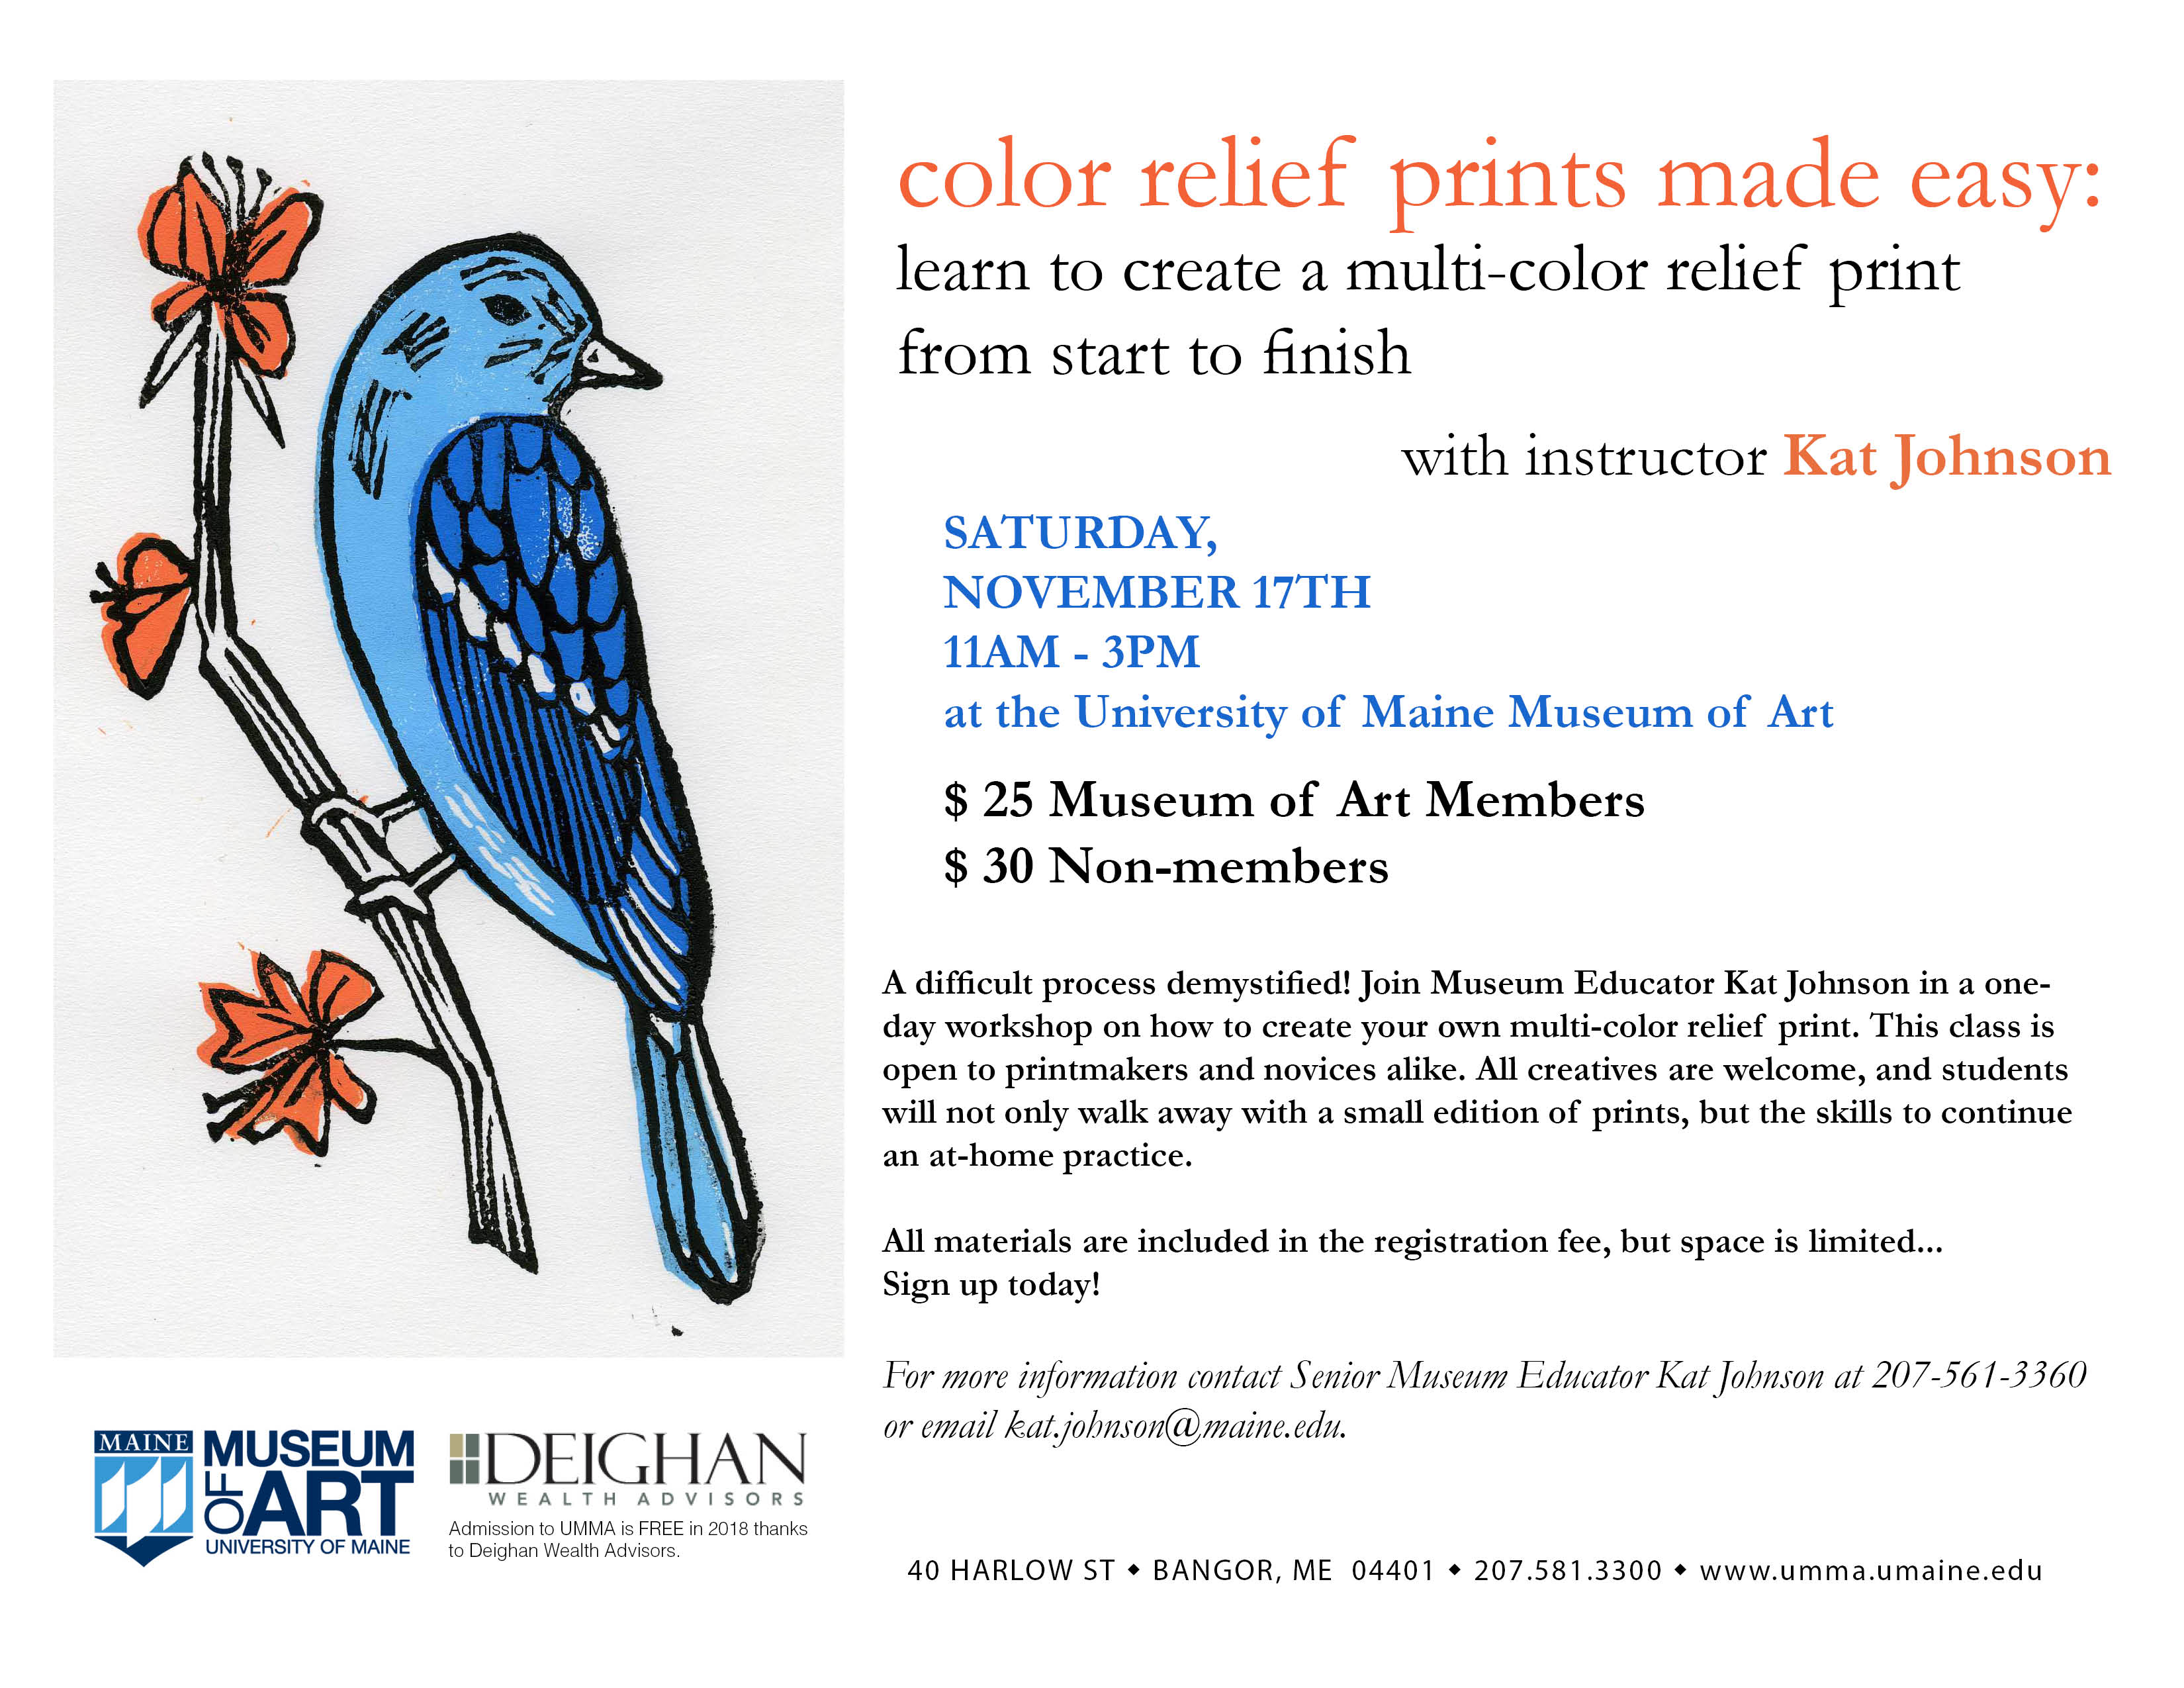 Color Relief Prints Made Easy - Museum of Art - University of Maine